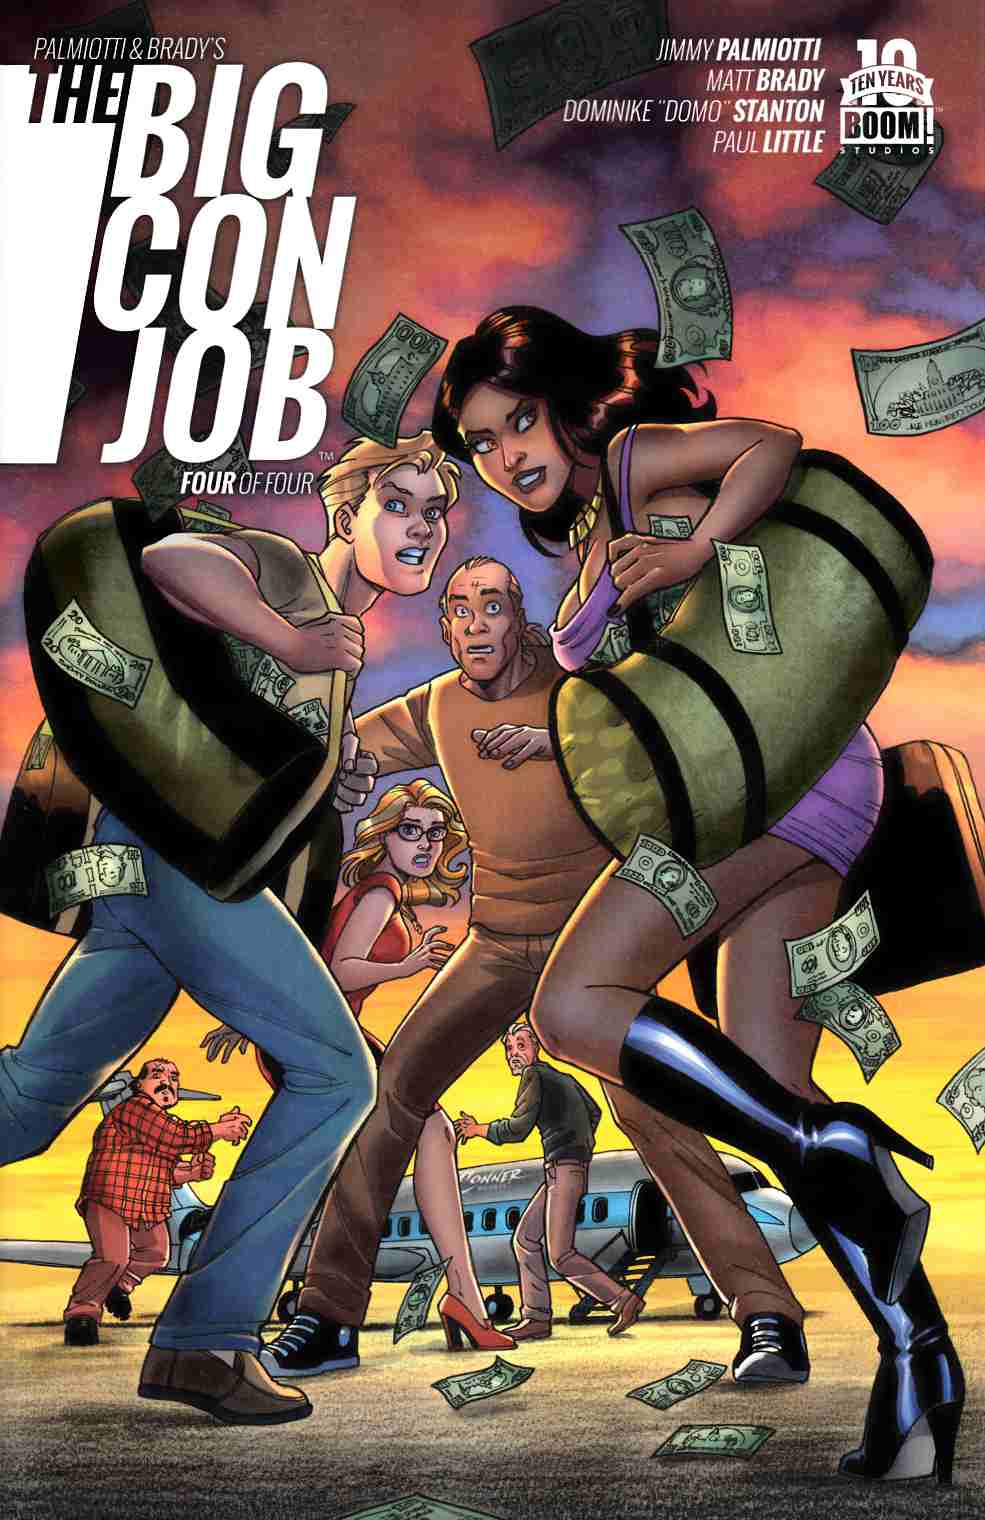 Palmiotti Brady Big Con Job #4 [Boom Comic]